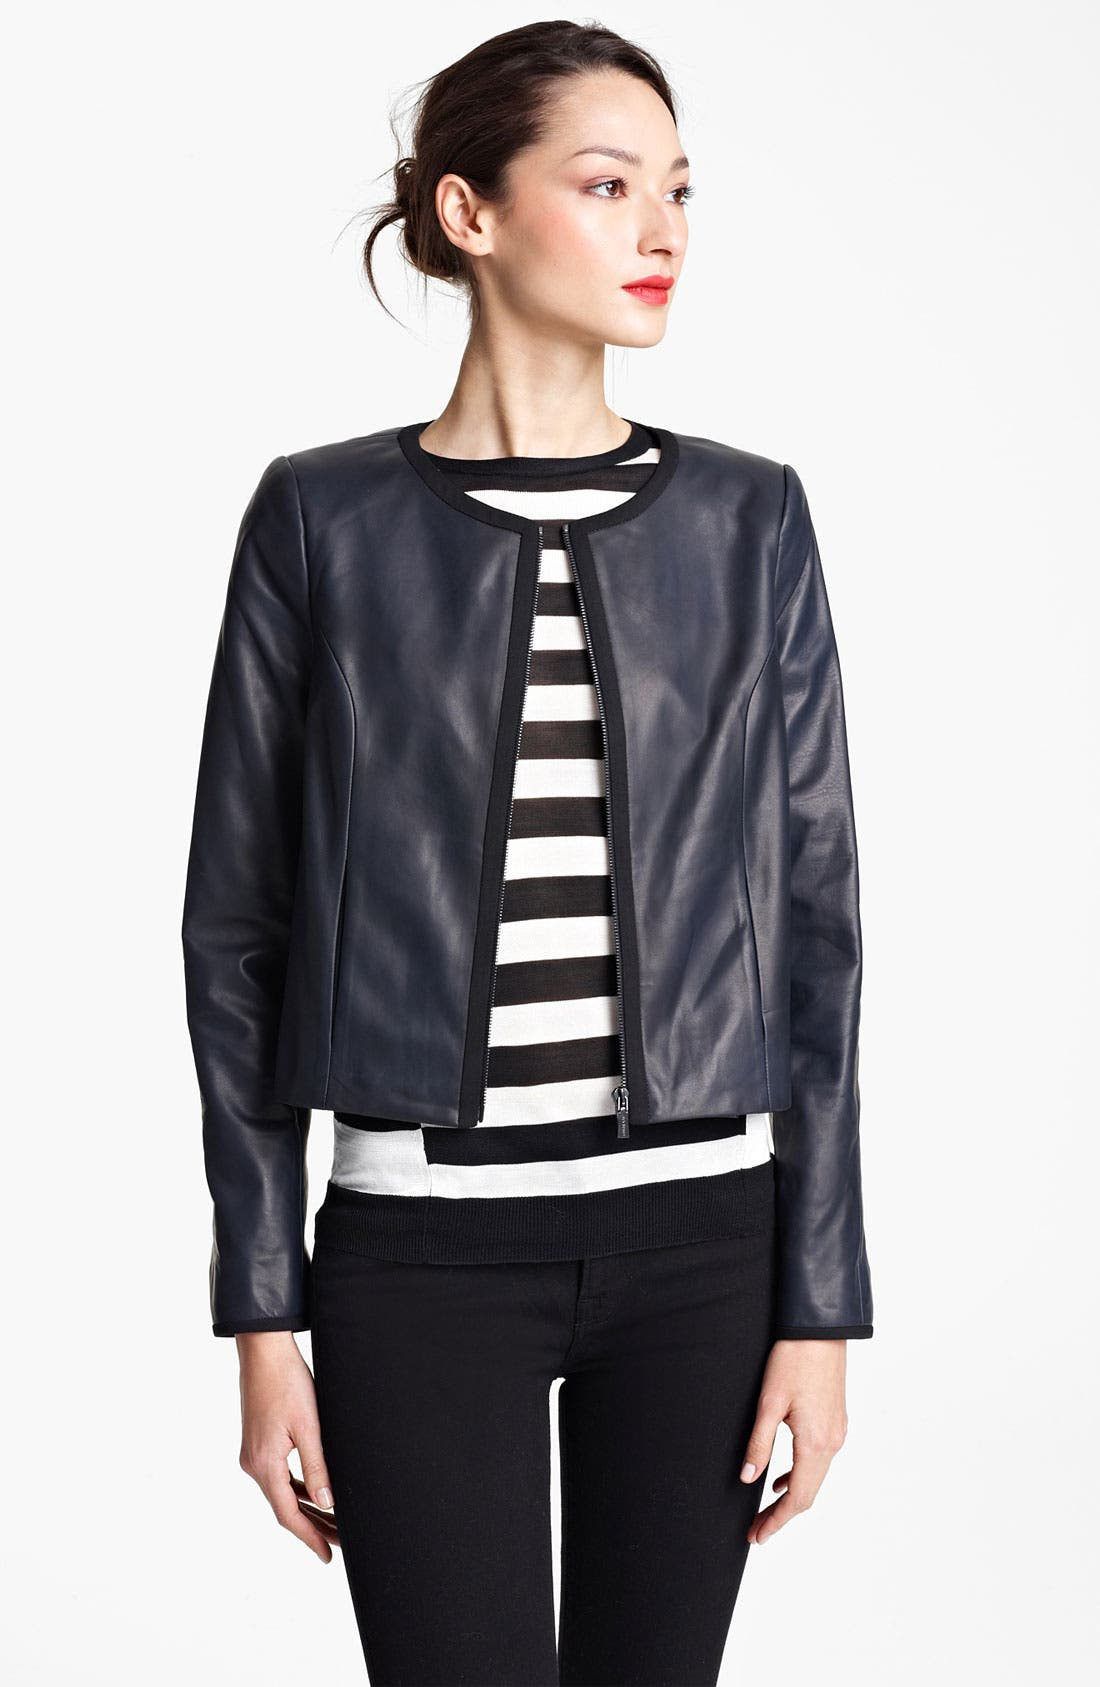 Main Image - Jason Wu Nappa Leather Jacket